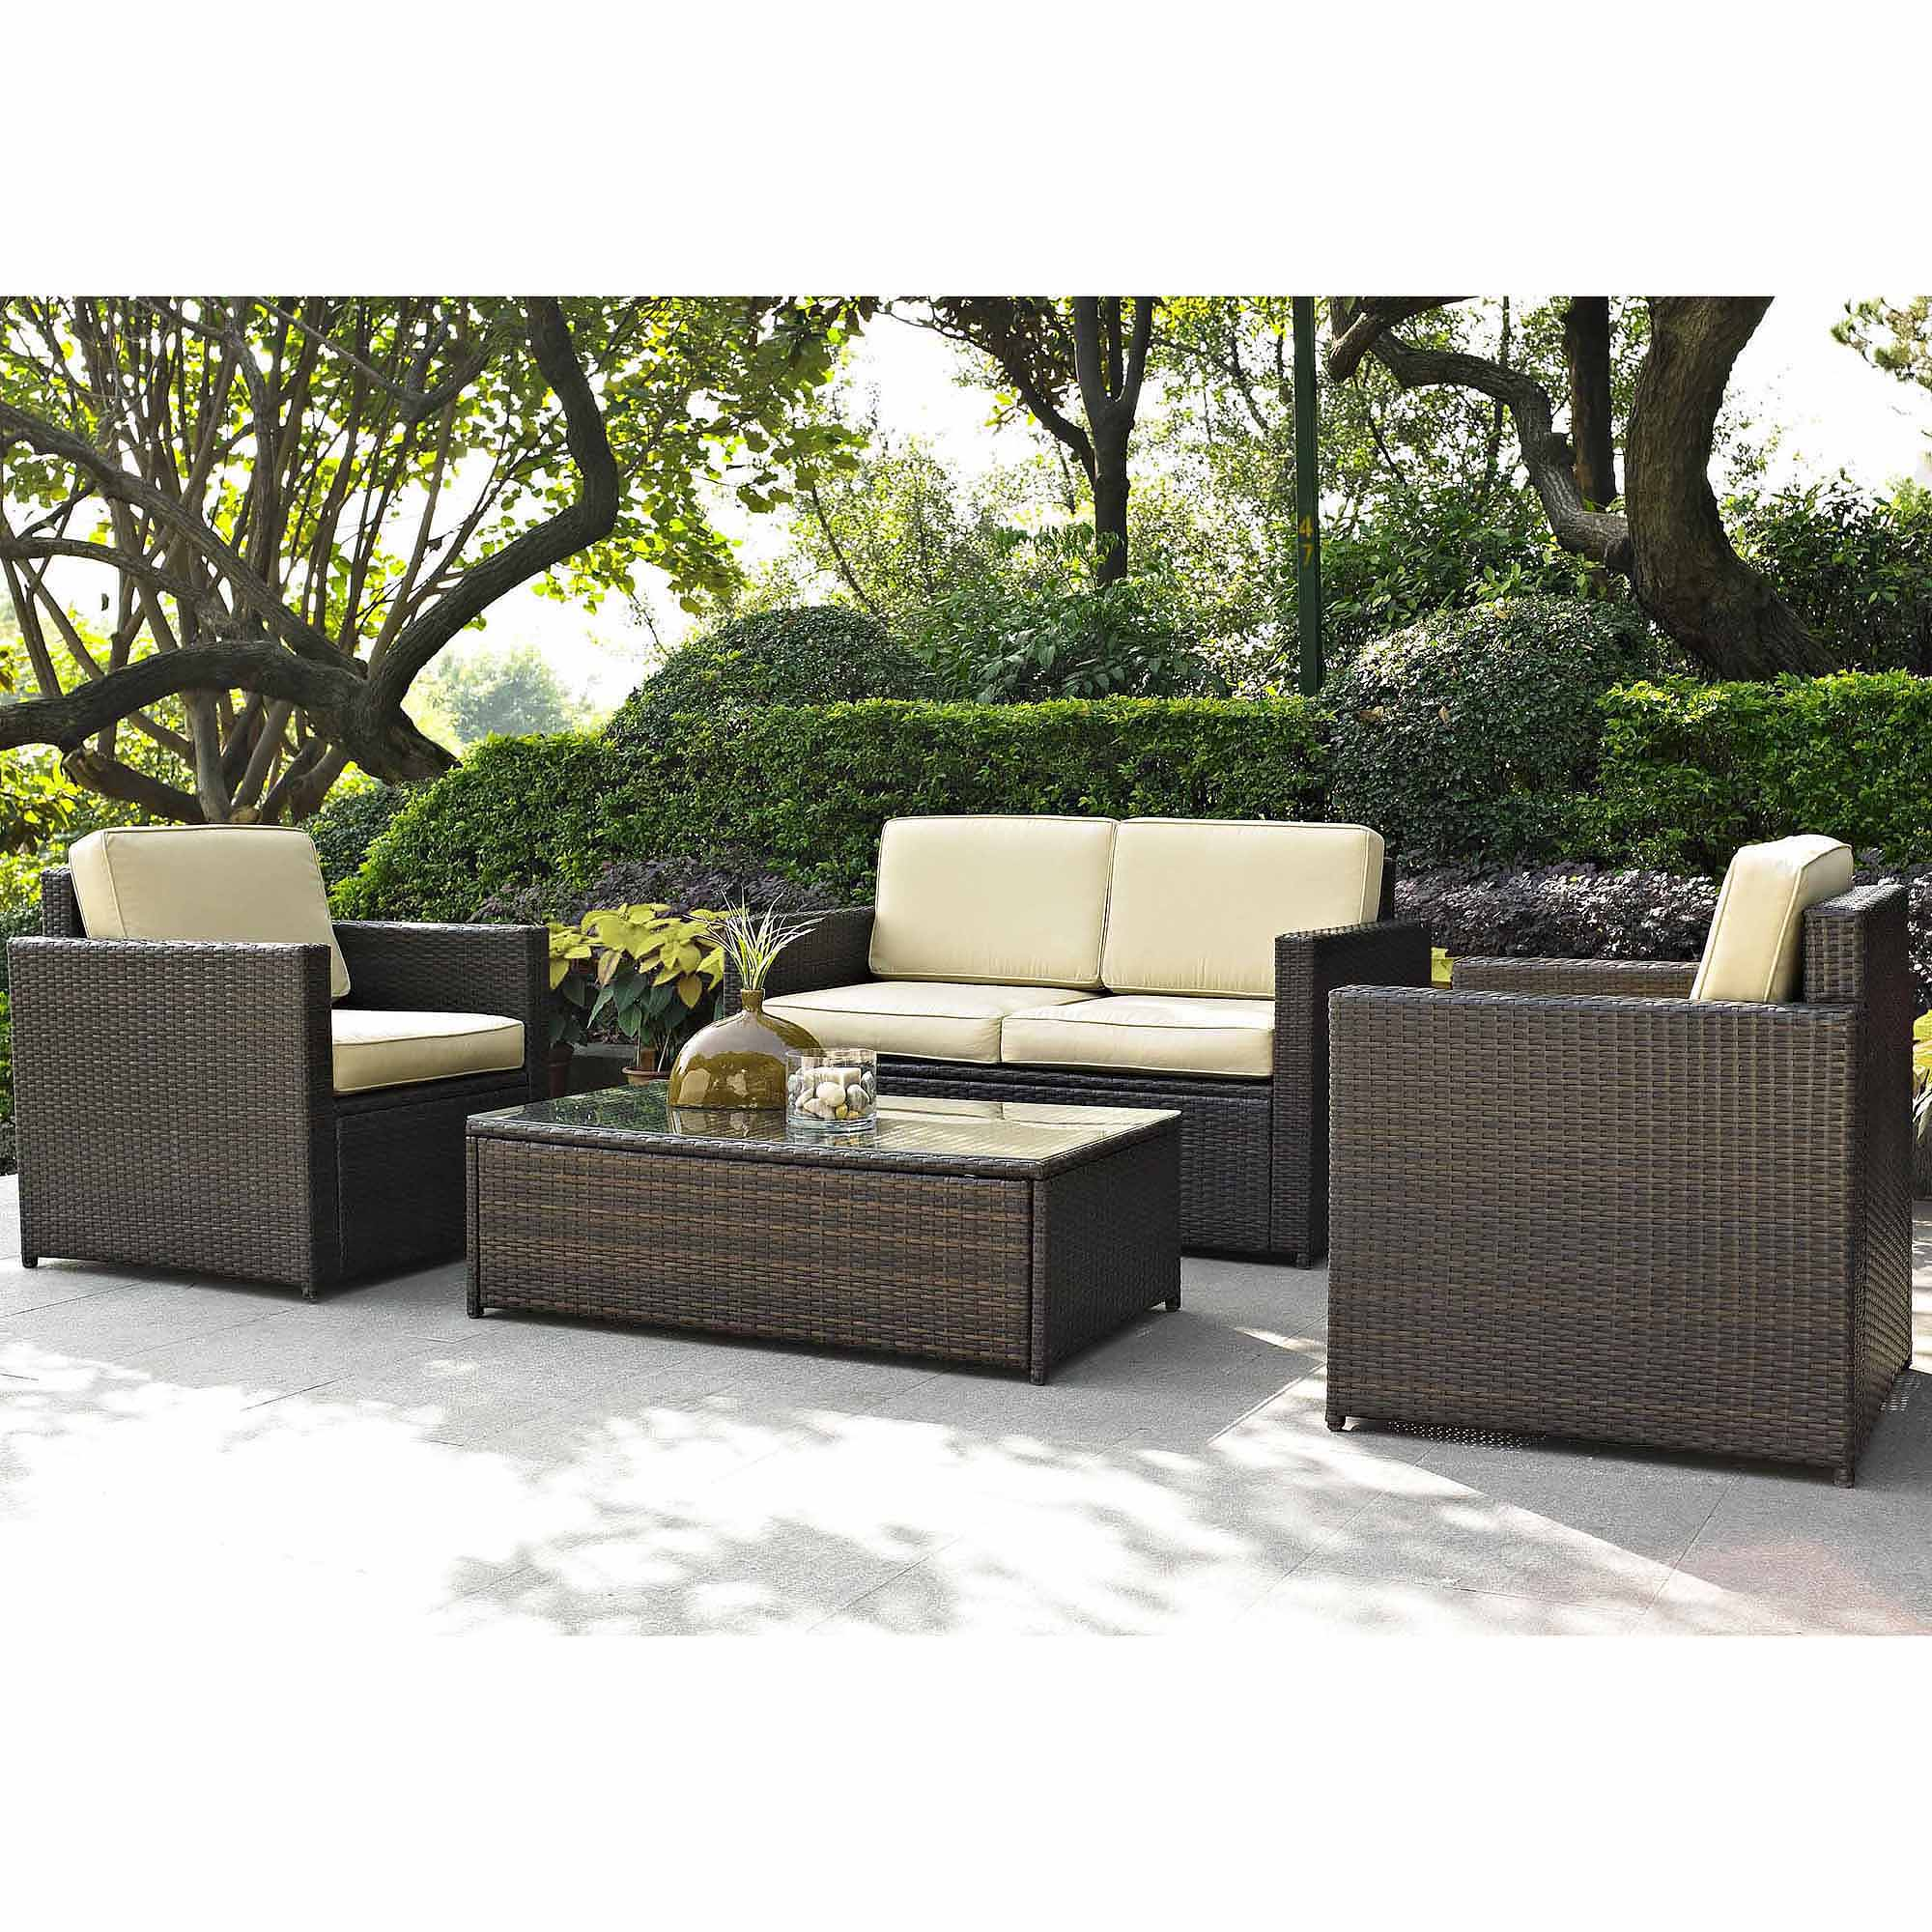 Best Choice Products 4-Piece Wicker Patio Conversation Furniture Set ...